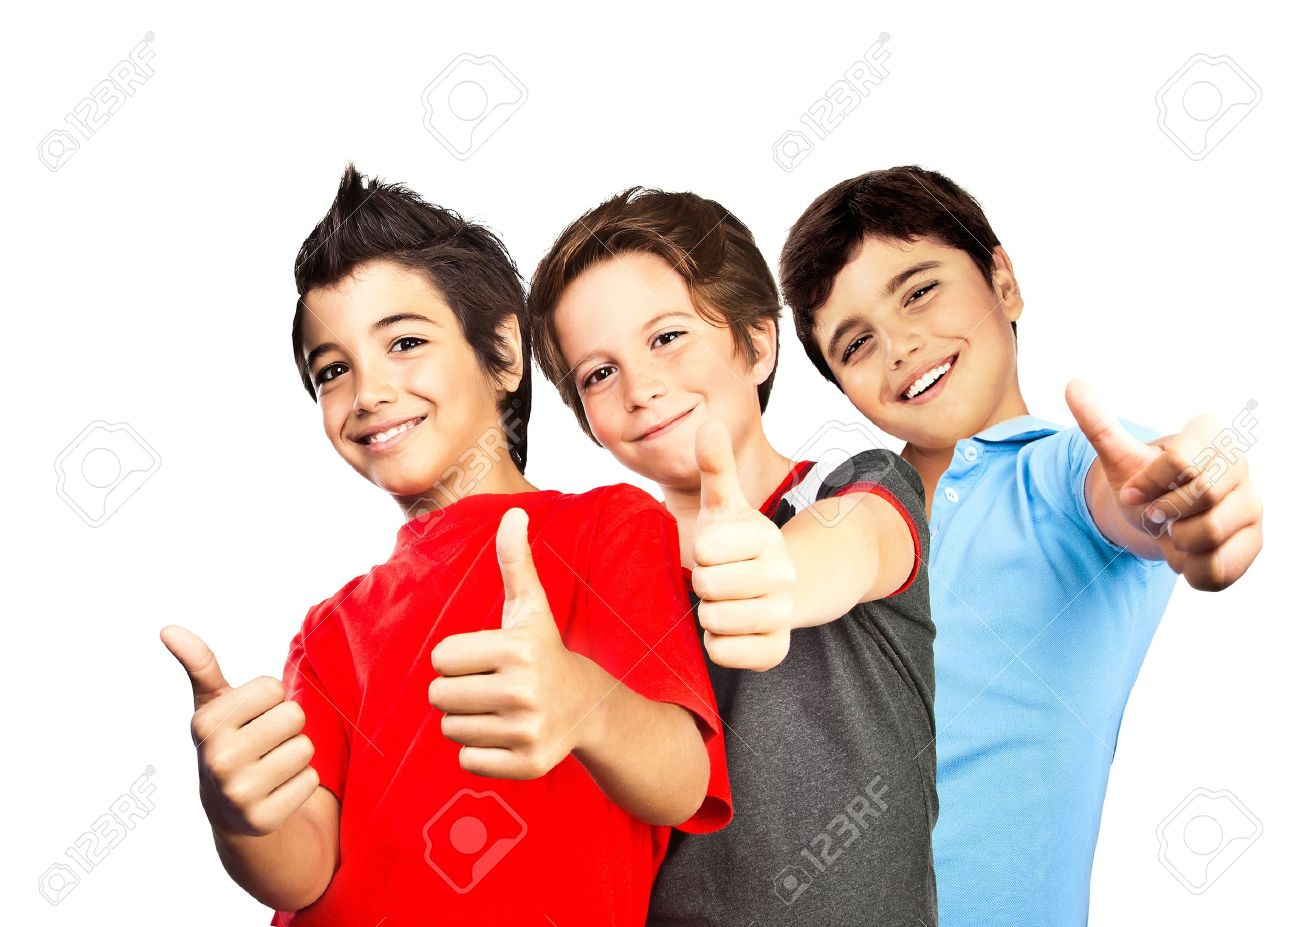 Happy boys, teenagers smiling, thumbs up, portrait of best friends isolated on white background, cute kids having fun Stock Photo - 10649125